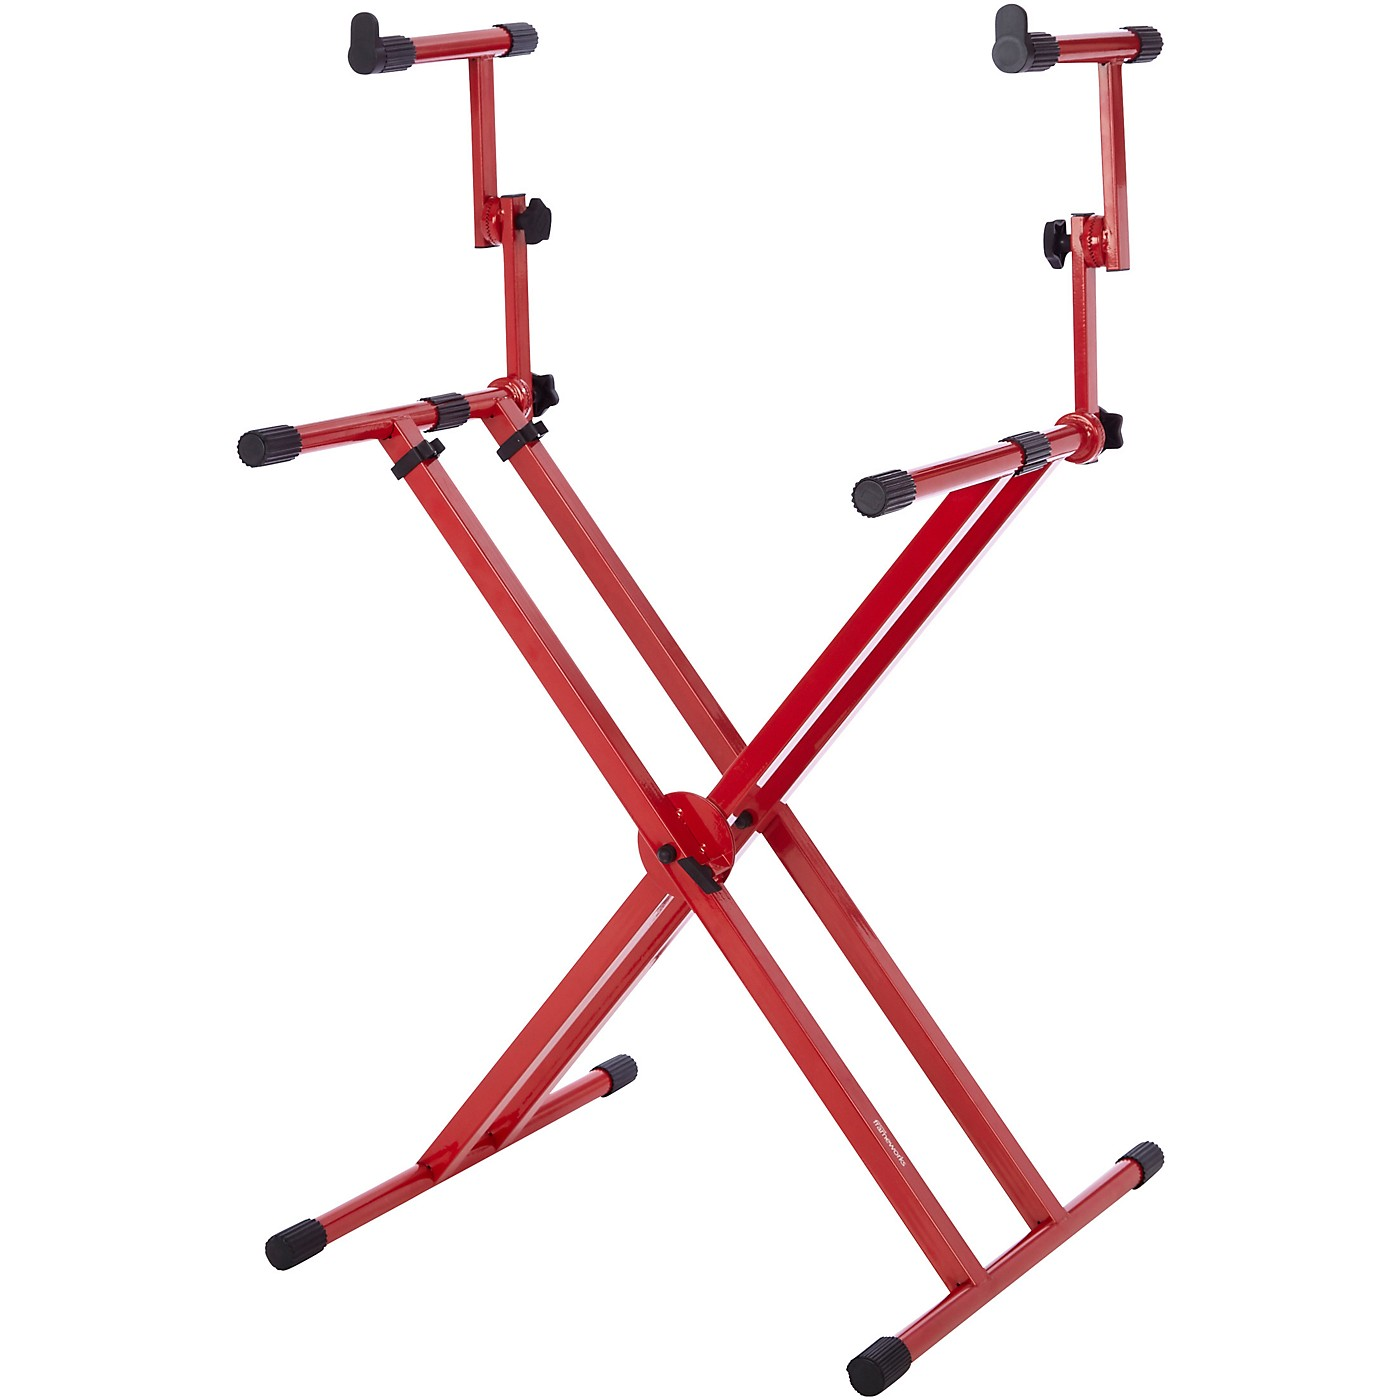 Gator 2-Tier X-Style Keyboard Stand - Nord Red thumbnail